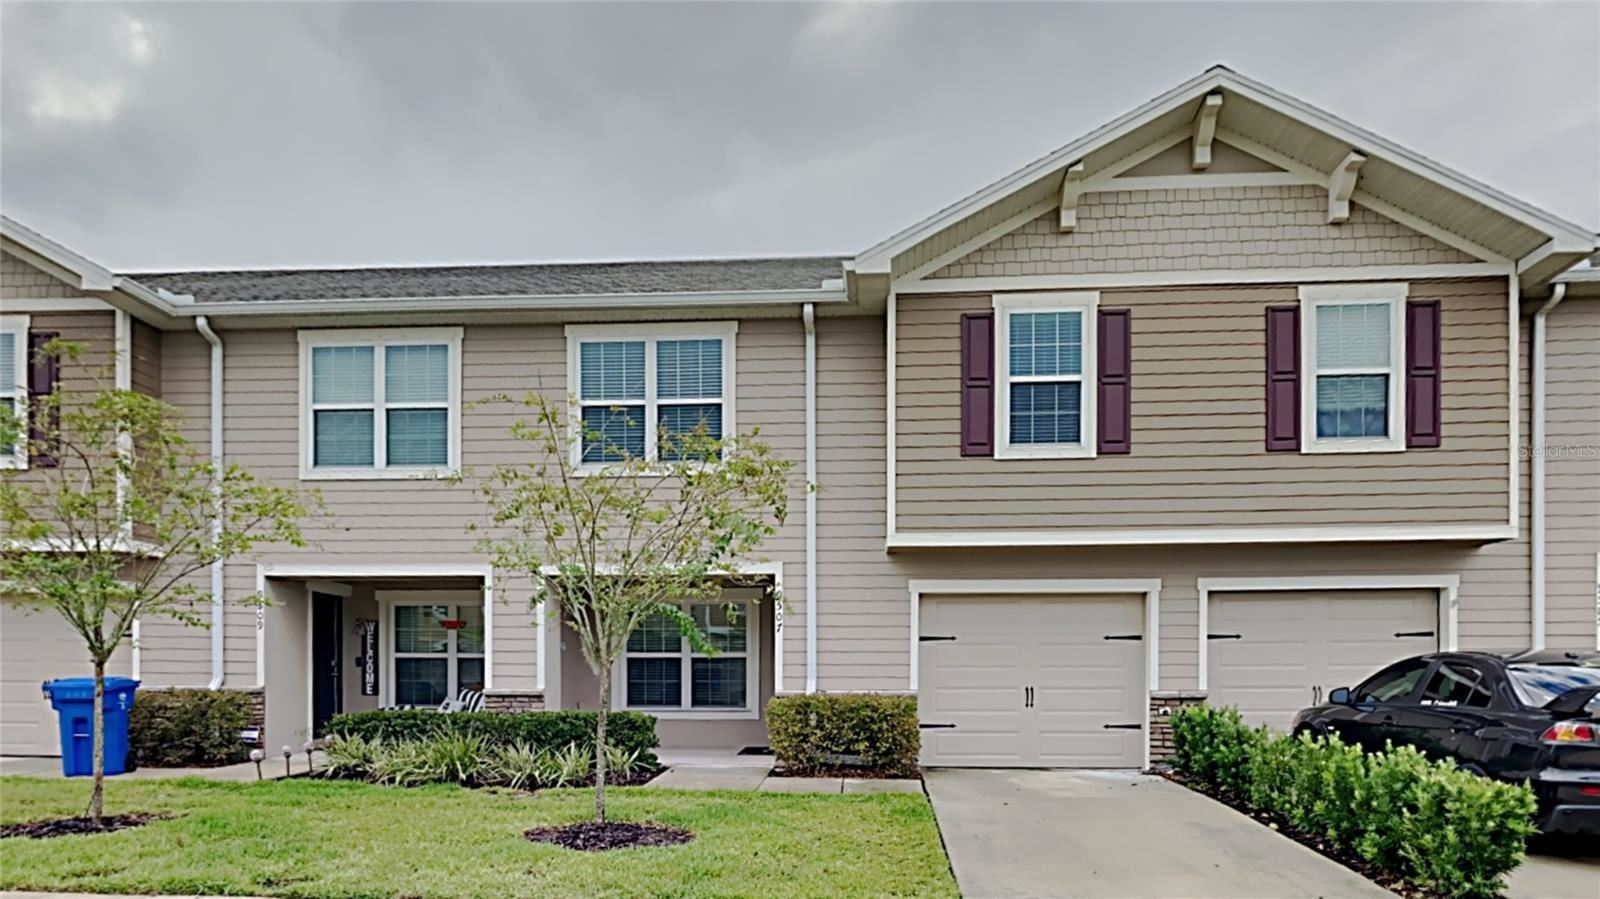 9507 TOCOBAGA PLACE, Riverview, FL 33578 - MLS#: T3328478